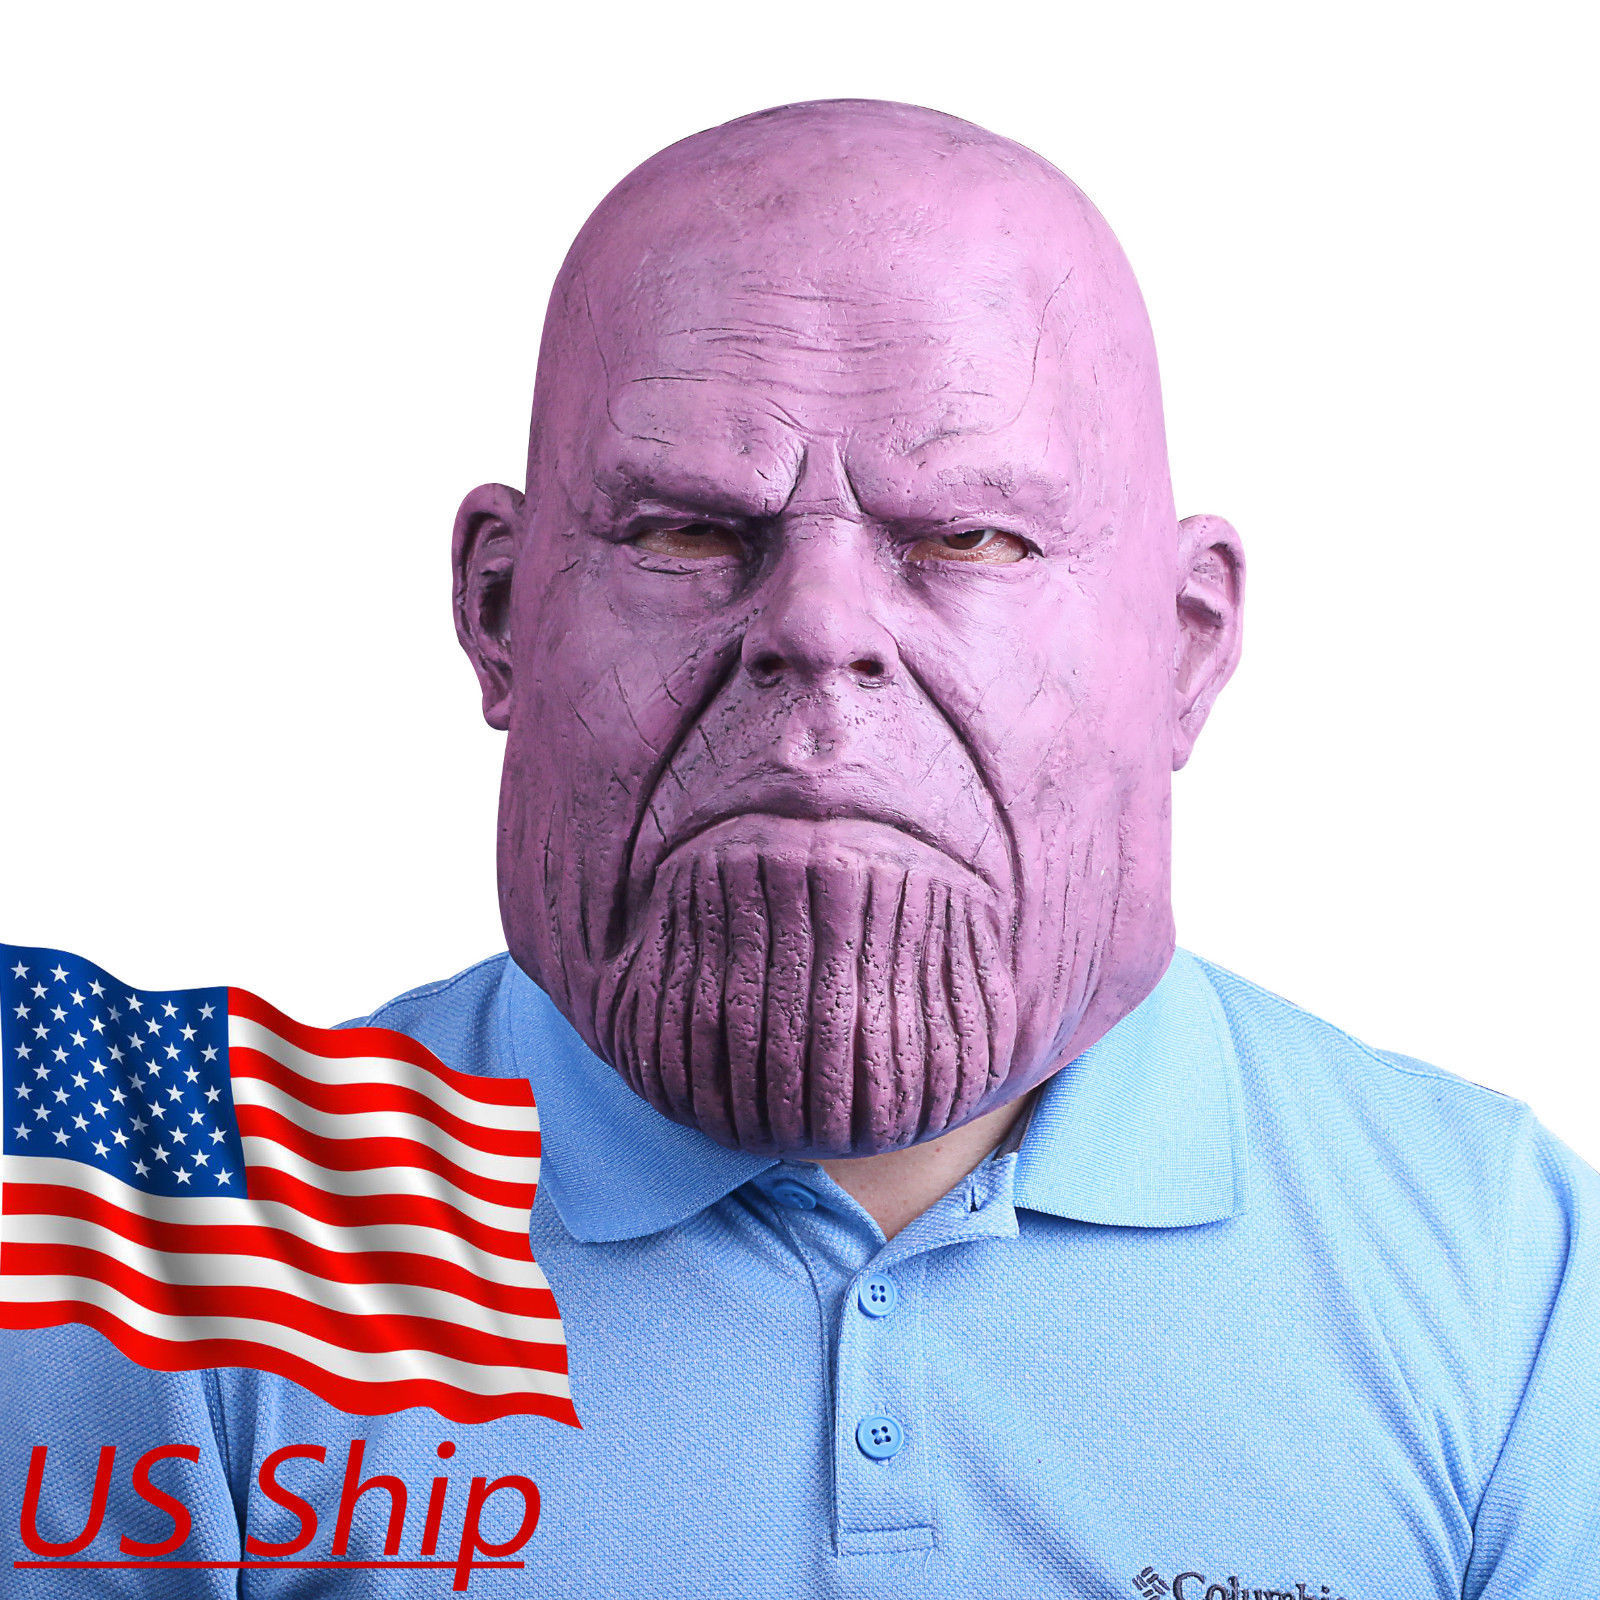 2018 Thanos Realistic Face Mask Avengers 3 Infinity War Replica Prop Mask - $33.04